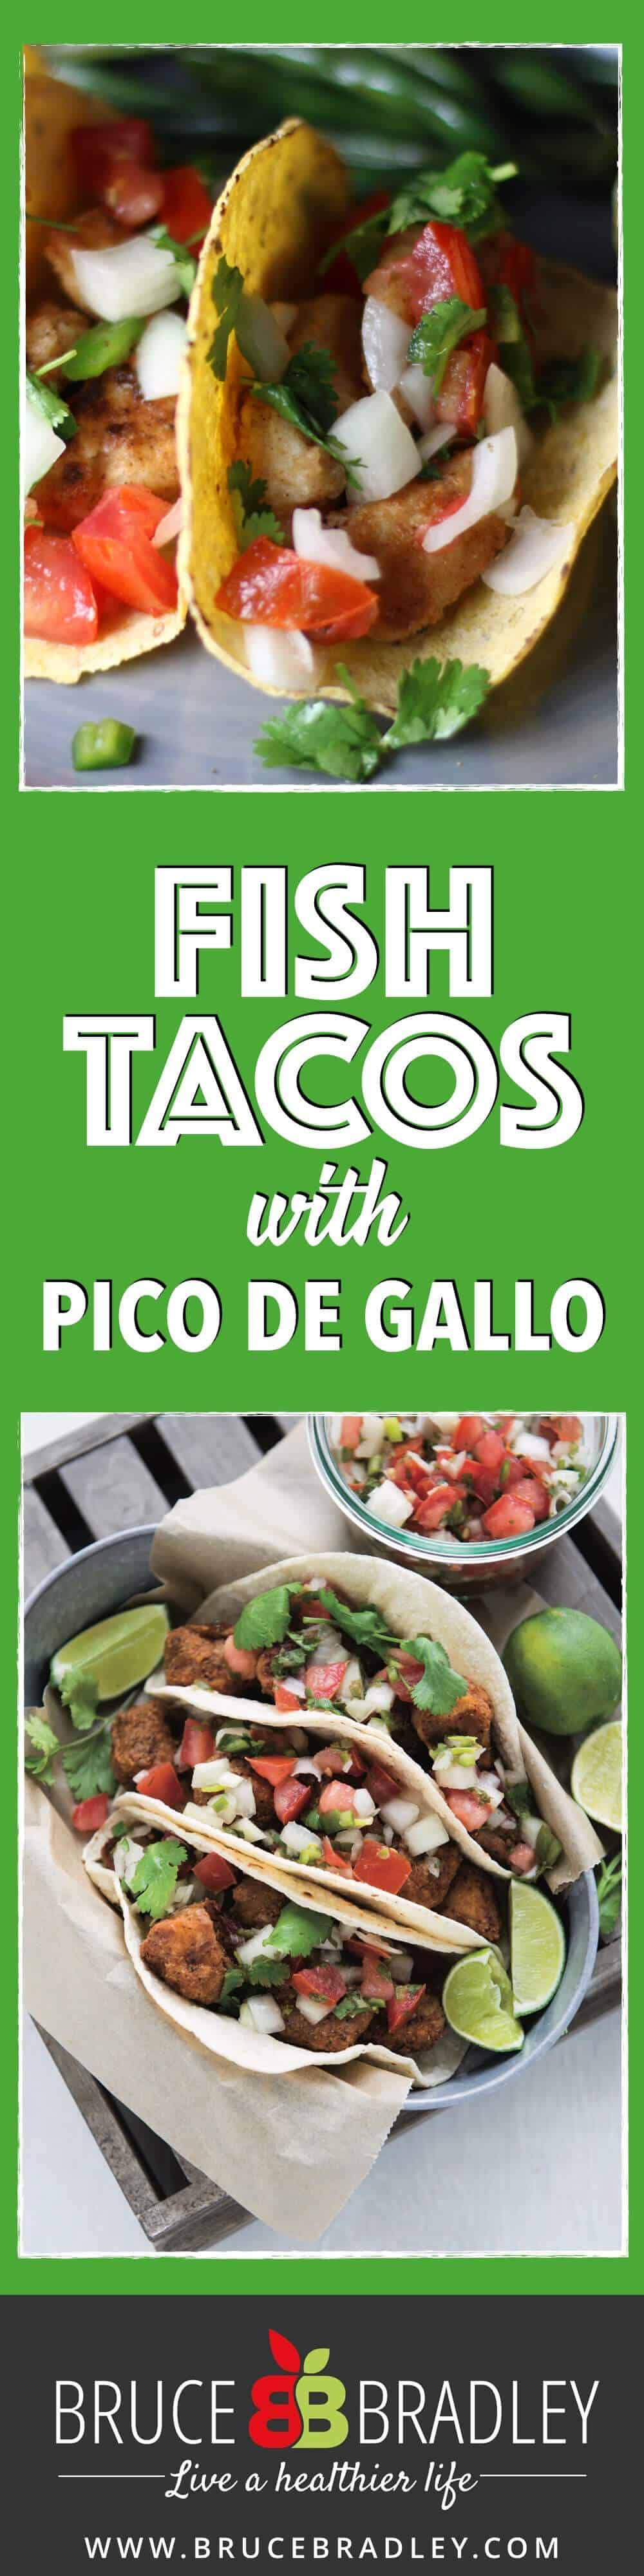 Super delicious and easy to prepare this fish tacos recipe from Lisa Leake's new cookbook (100 Days of Real Food: Fast and Fabulous) shows that eating real food doesn't have to be hard.